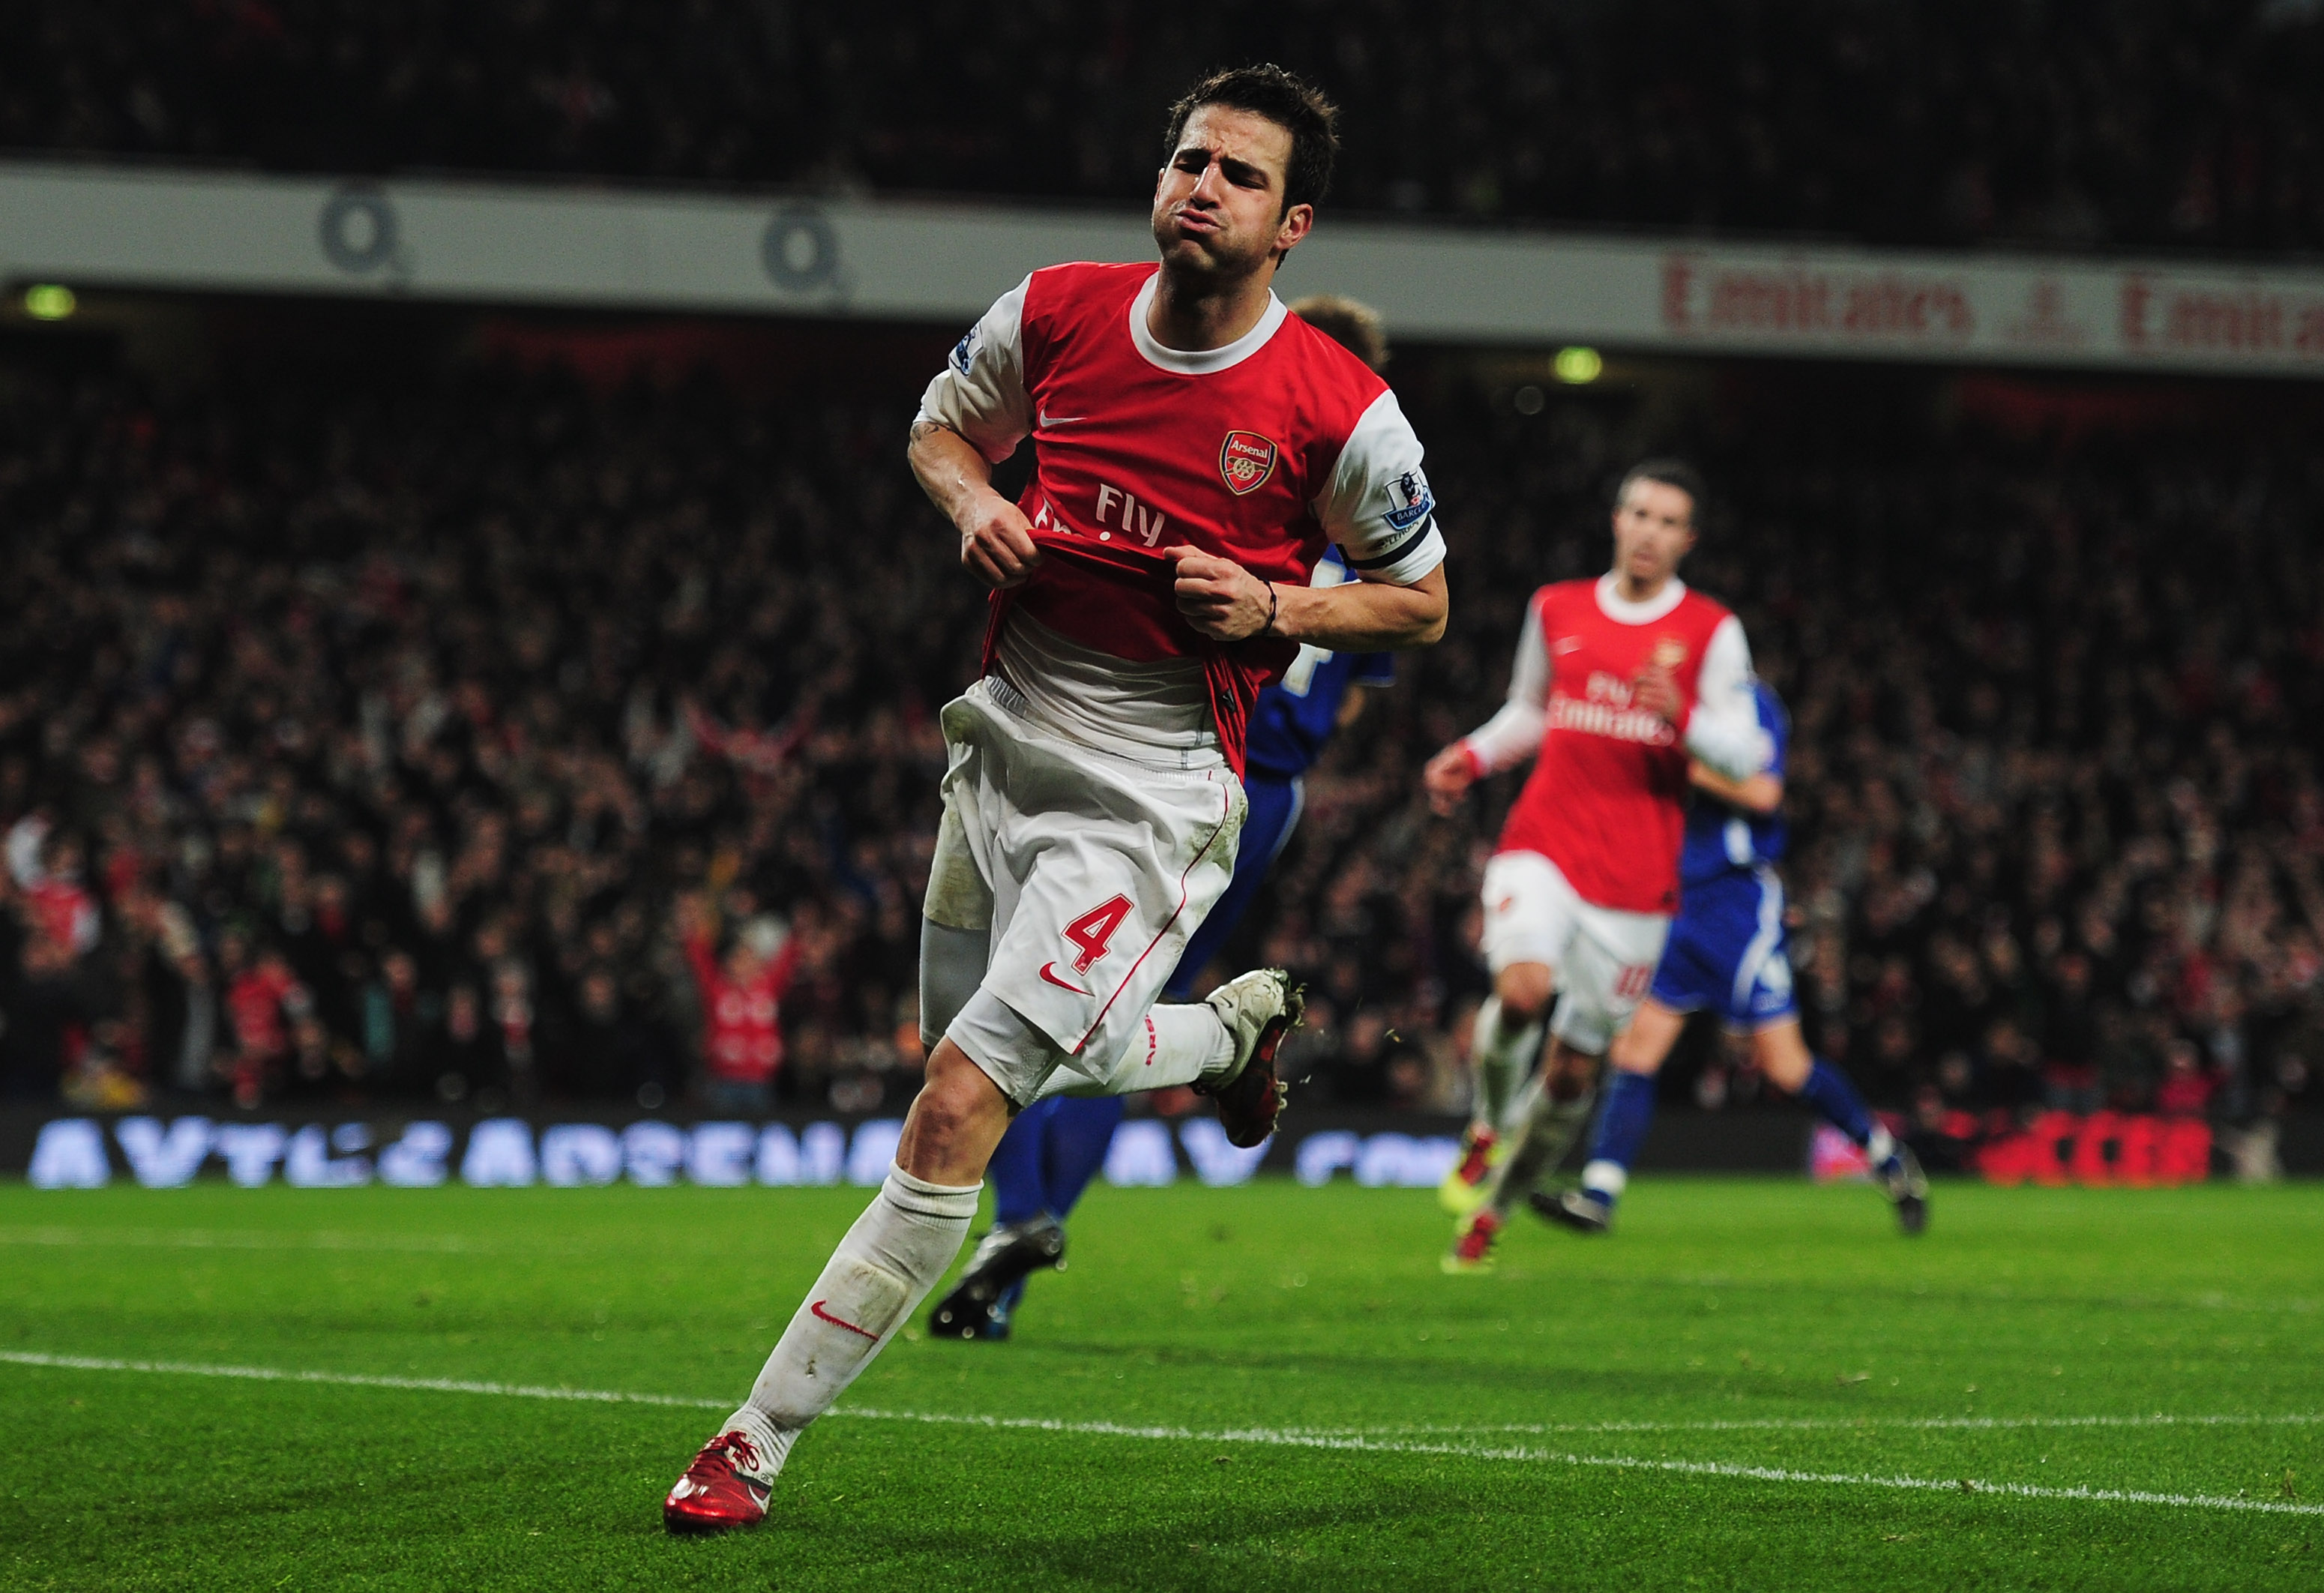 LONDON, ENGLAND - JANUARY 25:  Cesc Fabregas of Arsenal celebrates as he scores their third goal during the Carling Cup Semi Final Second Leg match between Arsenal and Ipswich Town at Emirates Stadium on January 25, 2011 in London, England.  (Photo by Sha